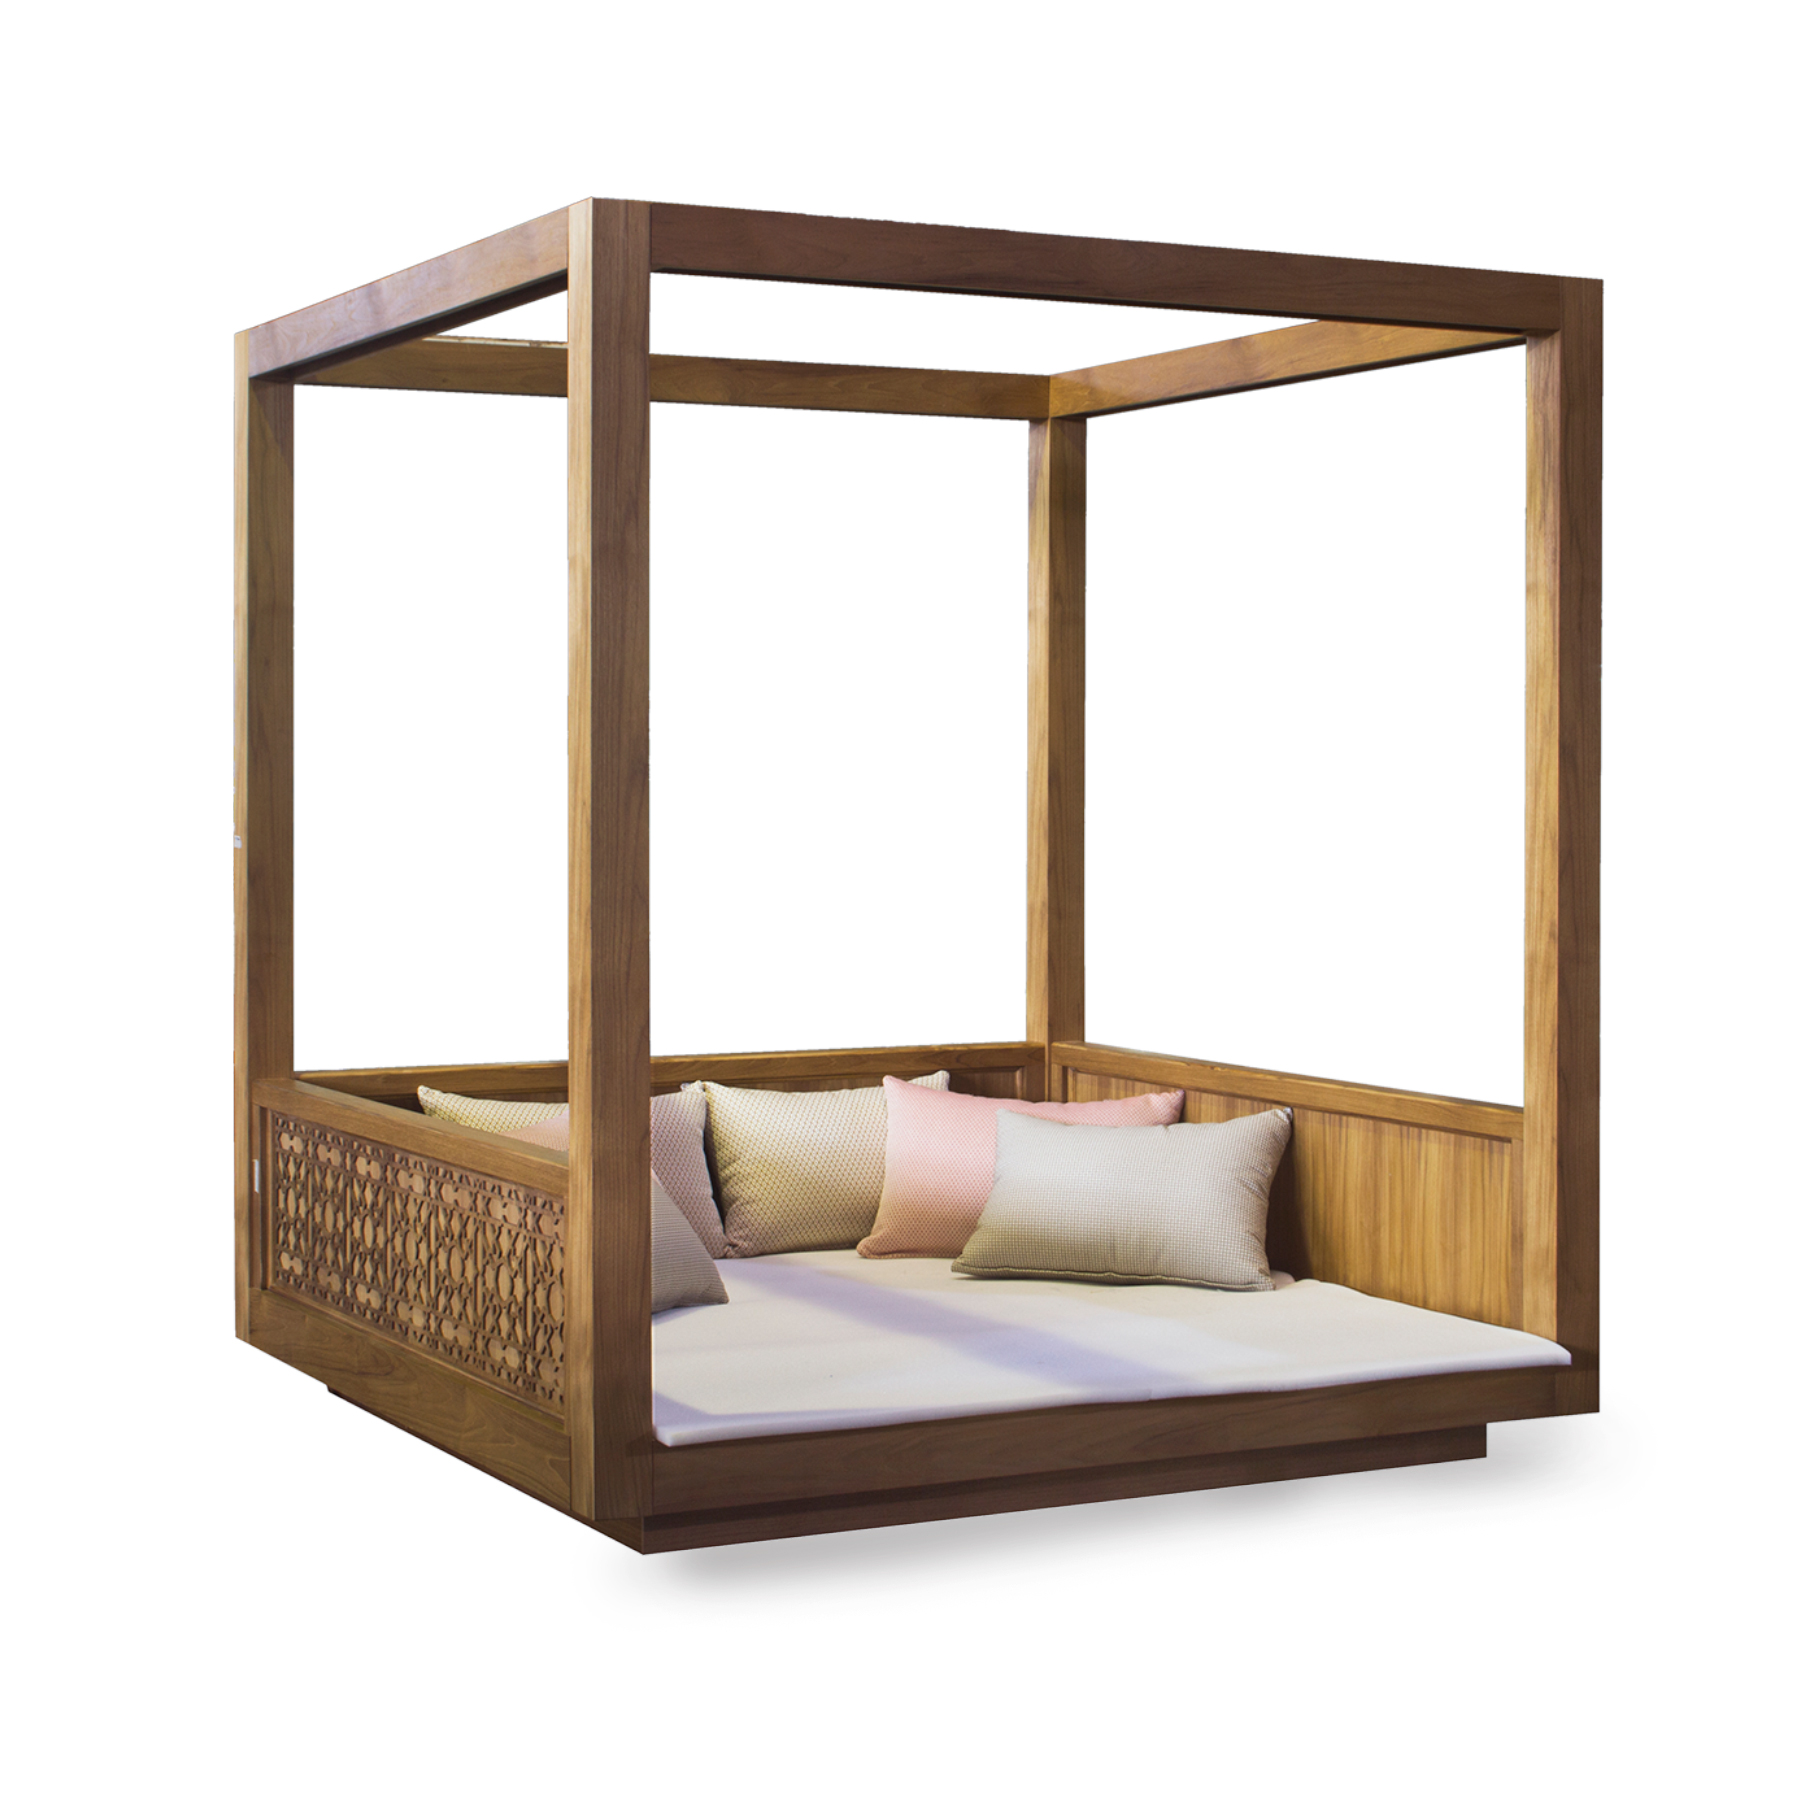 - Colonial 4 Poster Bed Camerin